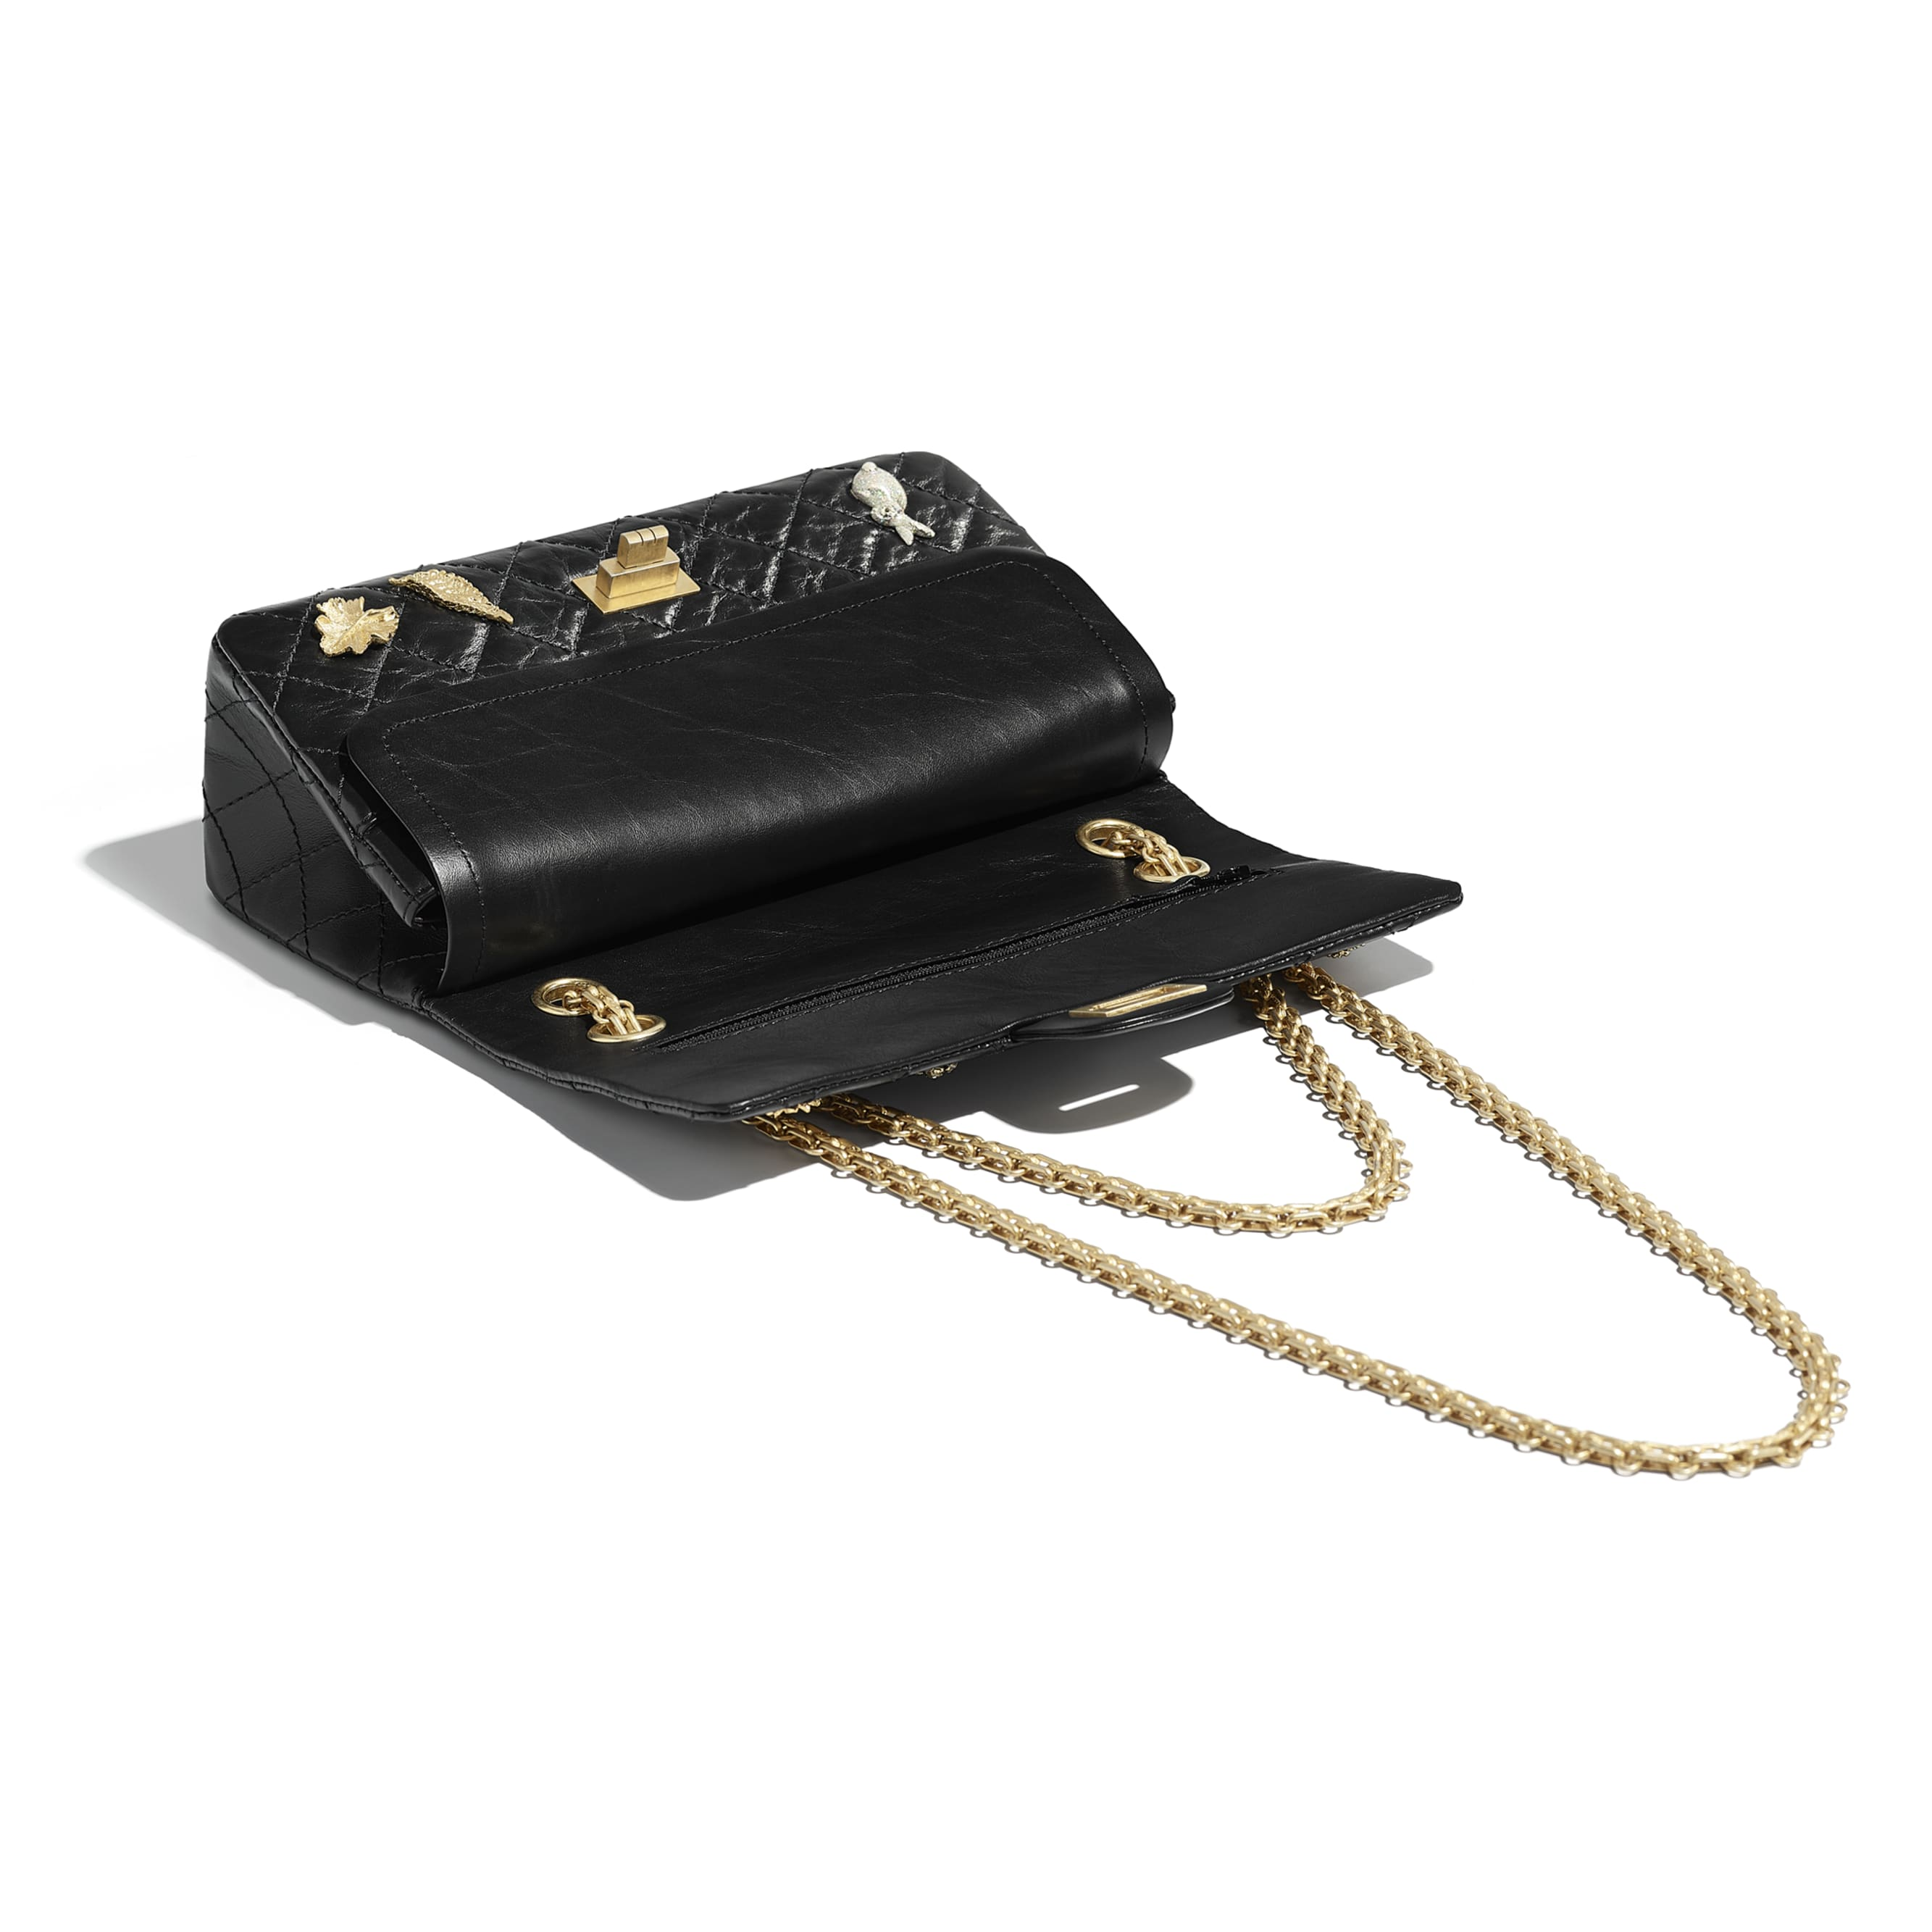 2.55 Handbag - Black - Aged Calfskin, Charms & Gold-Tone Metal - Other view - see standard sized version